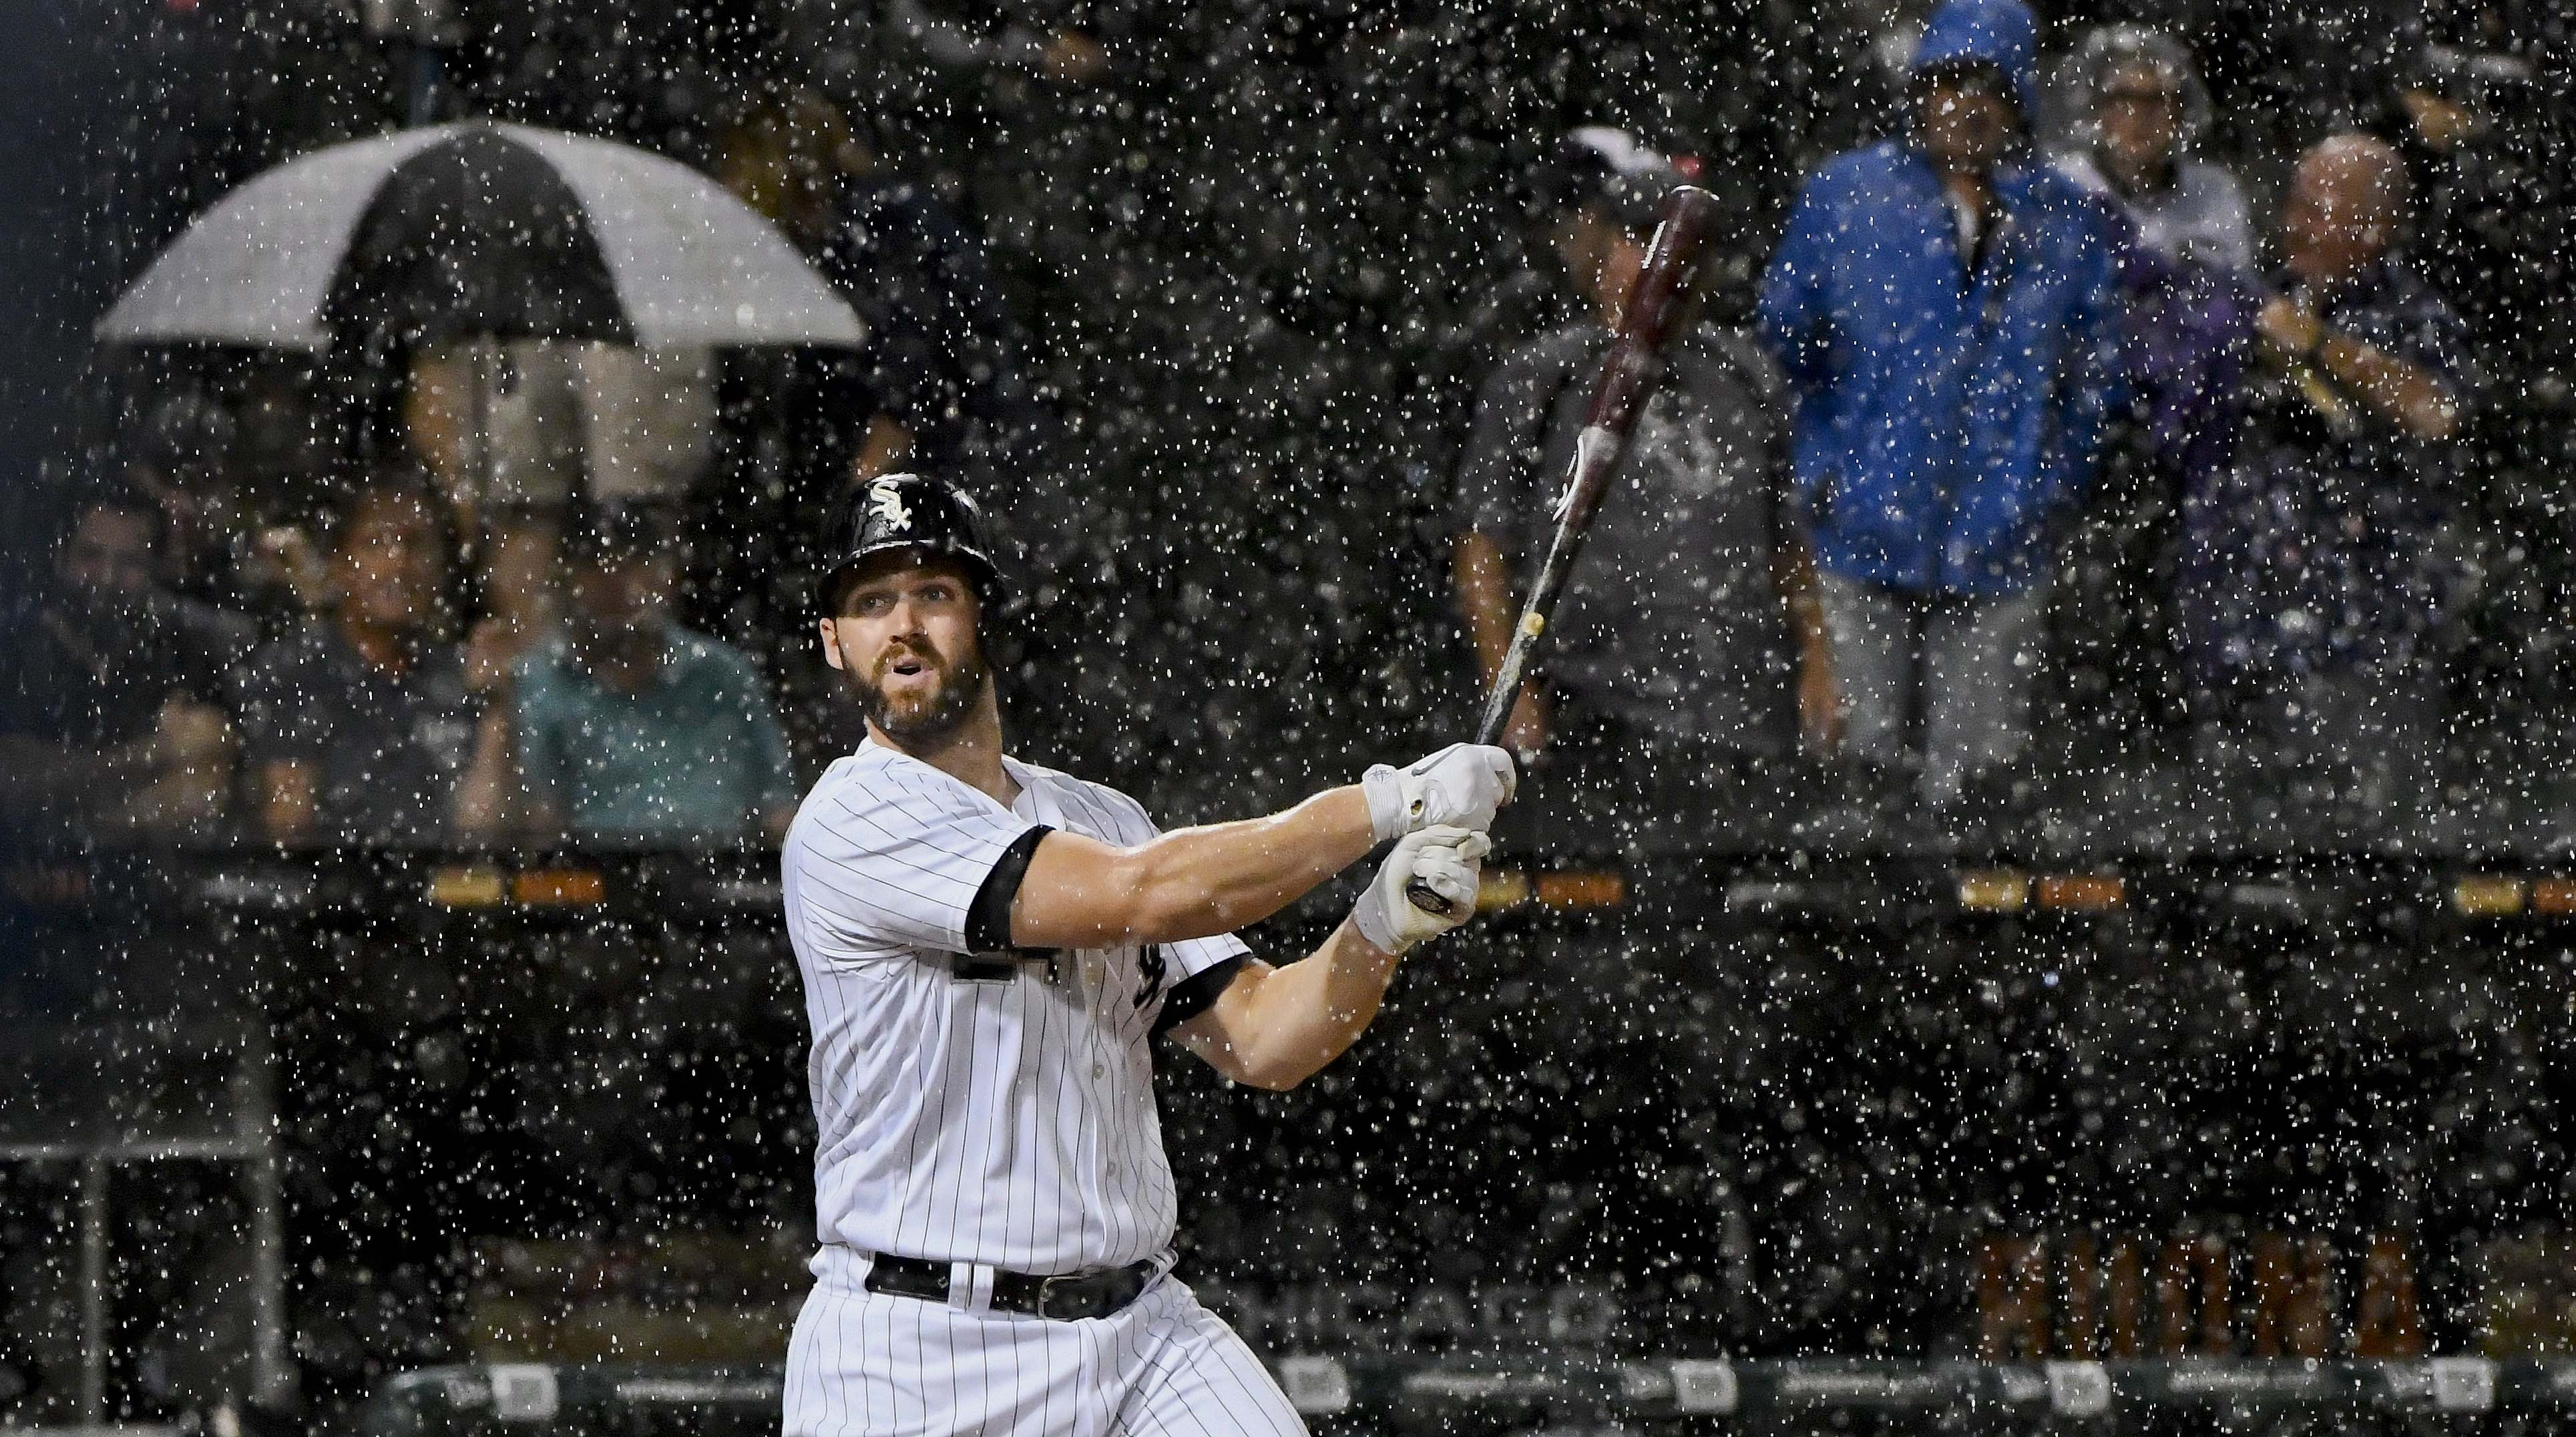 Sep 5, 2018; Chicago, IL, USA; Chicago White Sox first baseman Matt Davidson (24) bats before a rain delay in the second inning against the Detroit Tigers at Guaranteed Rate Field. Mandatory Credit: Matt Marton-USA TODAY Sports